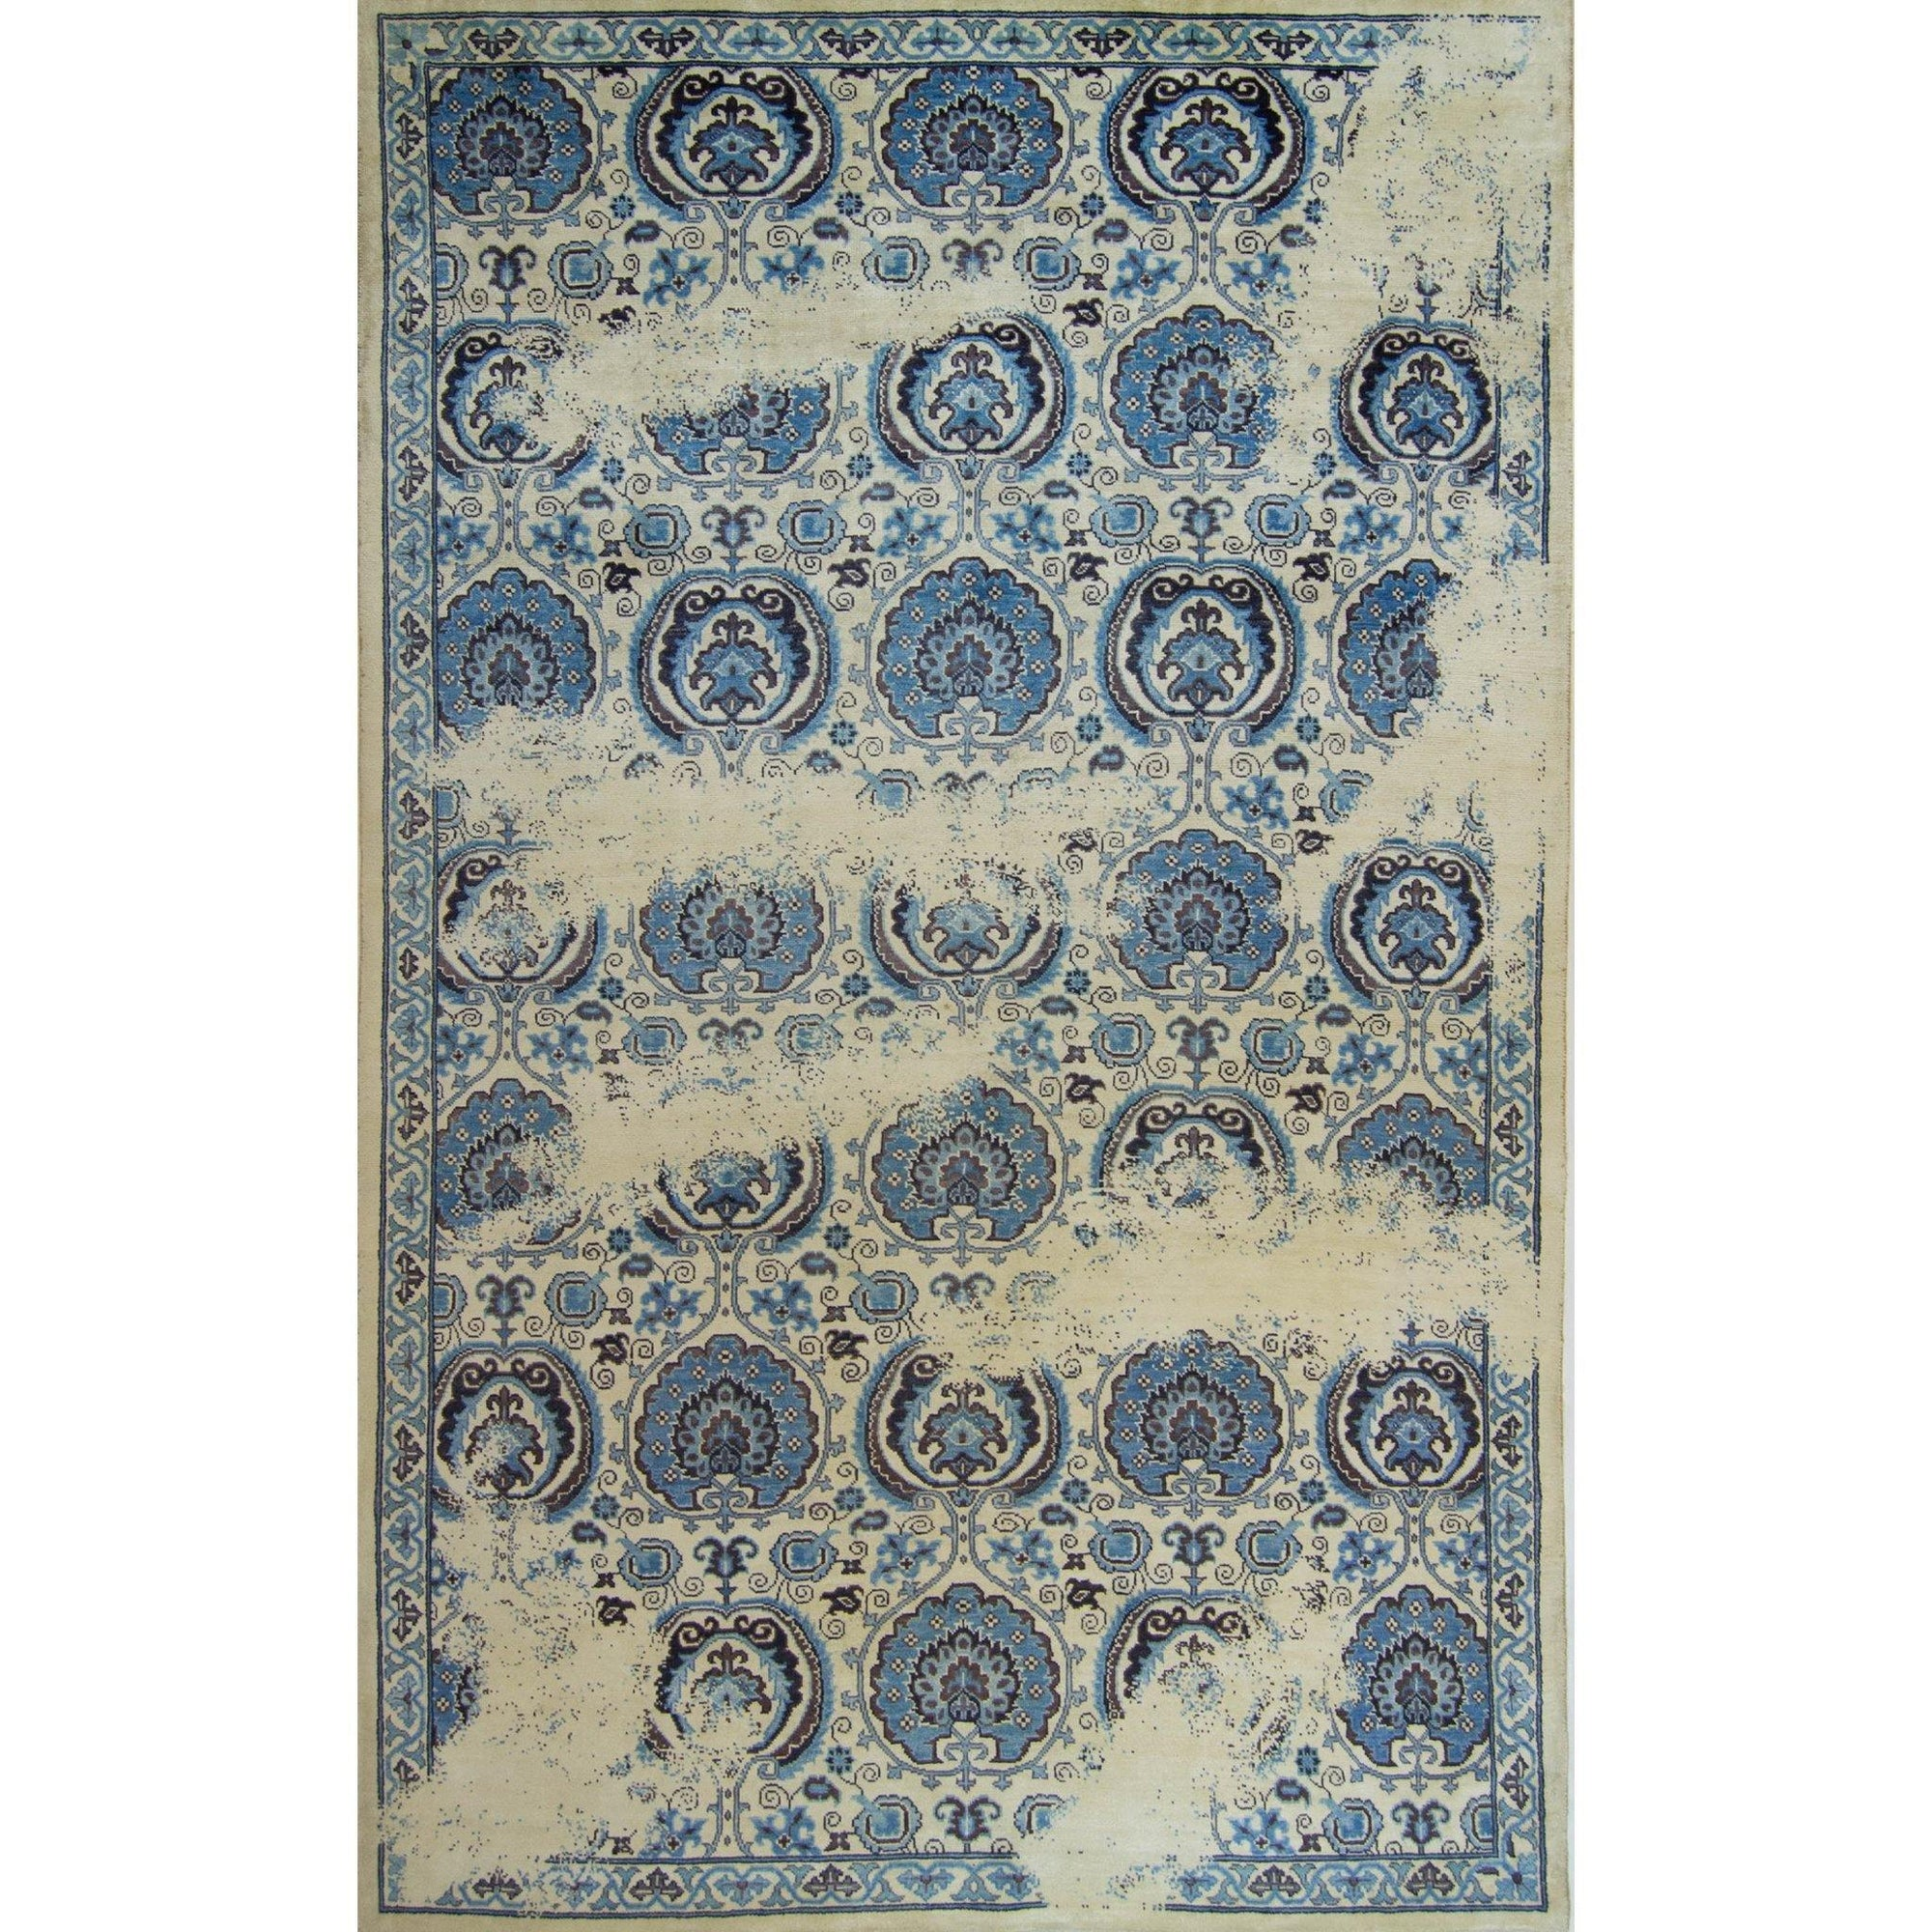 Fine Modern Hand-knotted Ushak Rug 178cm x 280cm Persian-Rug | House-of-Haghi | NewMarket | Auckland | NZ | Handmade Persian Rugs | Hand Knotted Persian Rugs